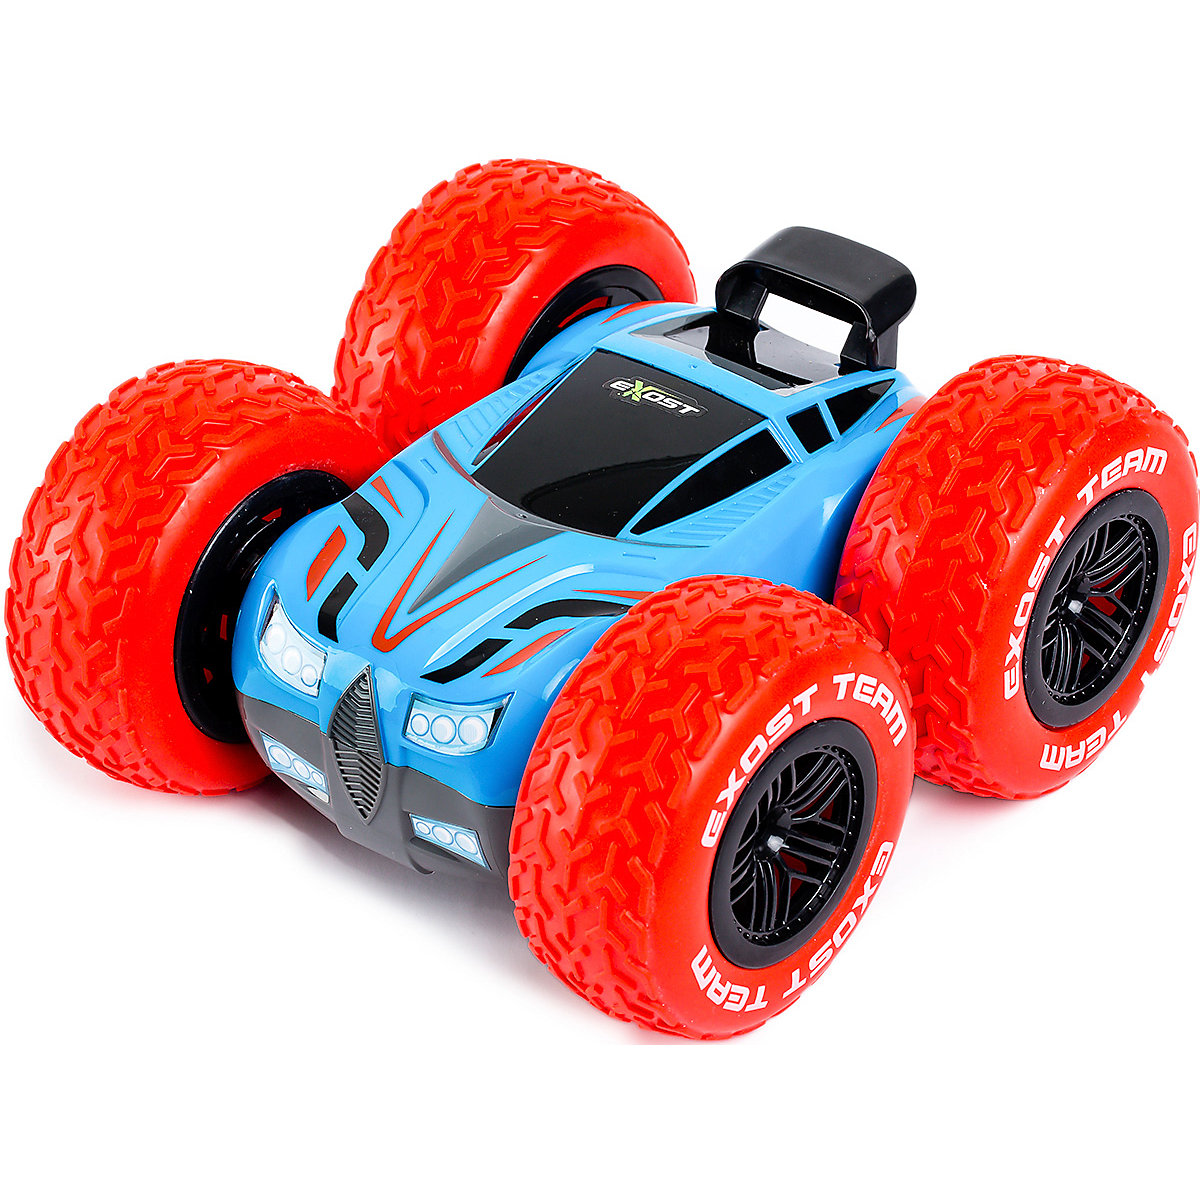 Silverlit RC Cars 10077713 Remote Control Toys radio-controlled toy games children Kids car high speed remote control rc rock crawler car toy 10428 b rc climbing car brushed electric car toy with led light best gift toy